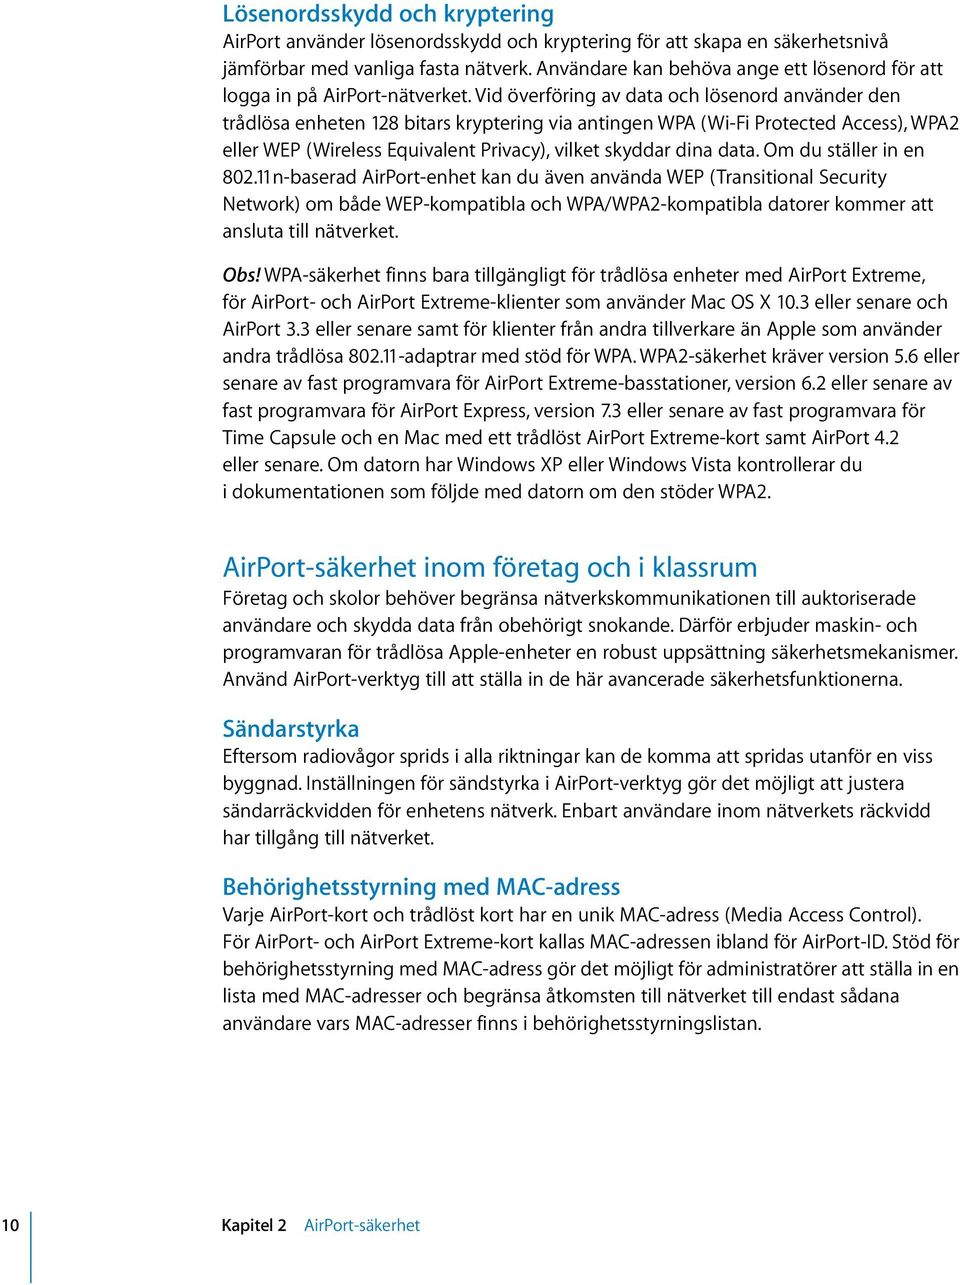 Vid överföring av data och lösenord använder den trådlösa enheten 128 bitars kryptering via antingen WPA (Wi-Fi Protected Access), WPA2 eller WEP (Wireless Equivalent Privacy), vilket skyddar dina